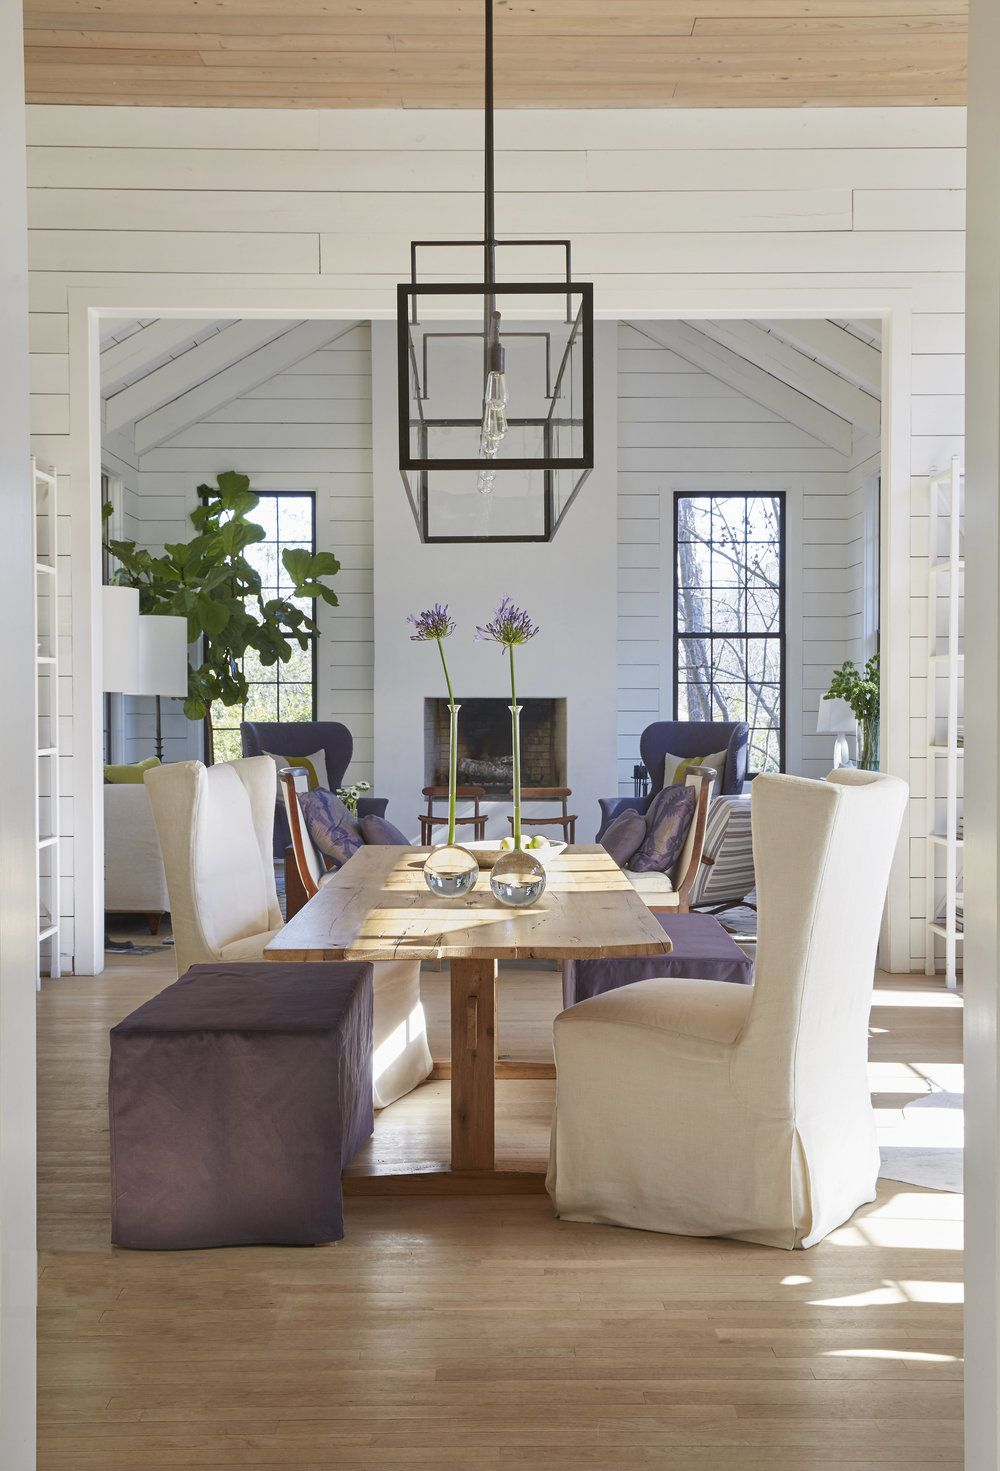 Modern rustic dining room table  ottoman n wing chair for dining  work space next to a seating